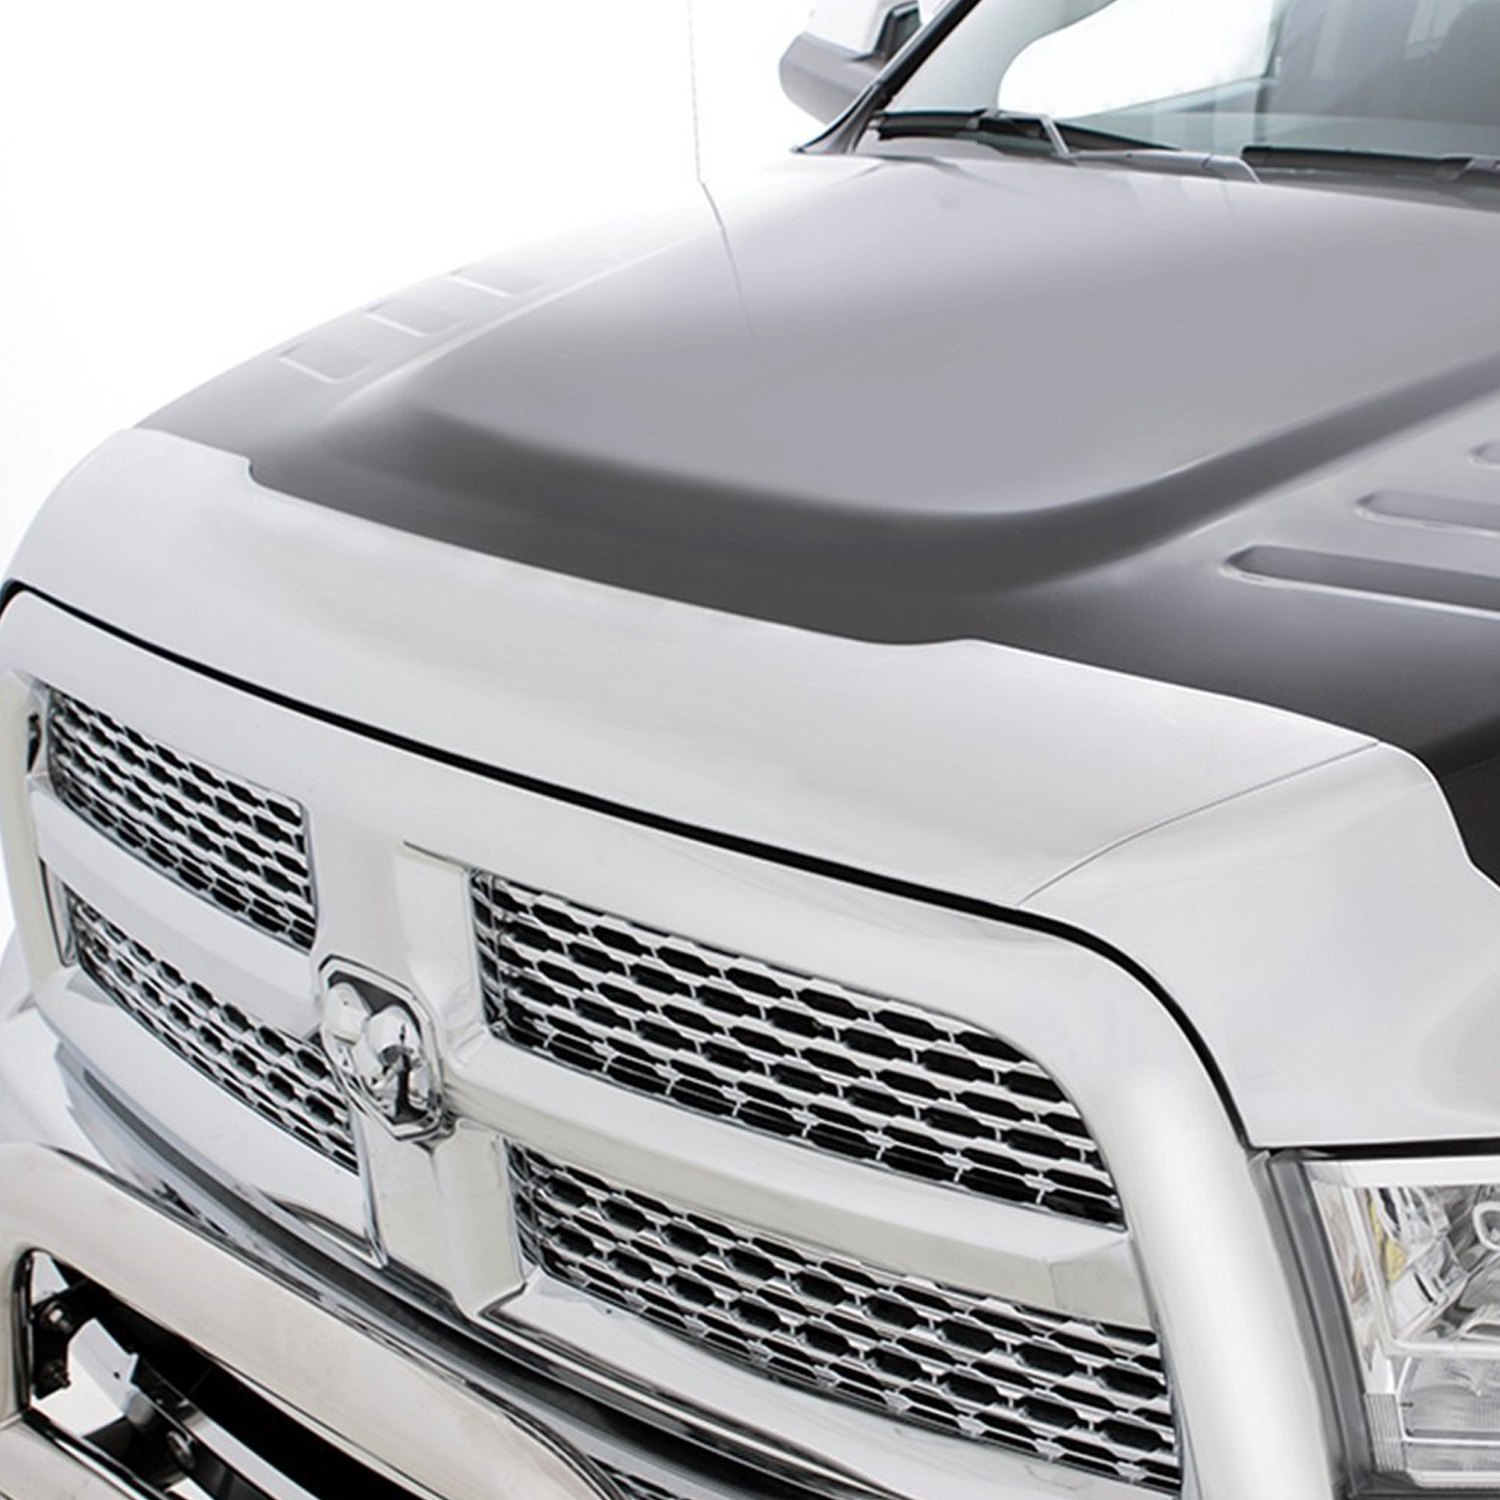 buy cheap Lund® 738004 - Chrome Hood Defender for 2015 RAM 1500 TRUCK Ebay & Amazon